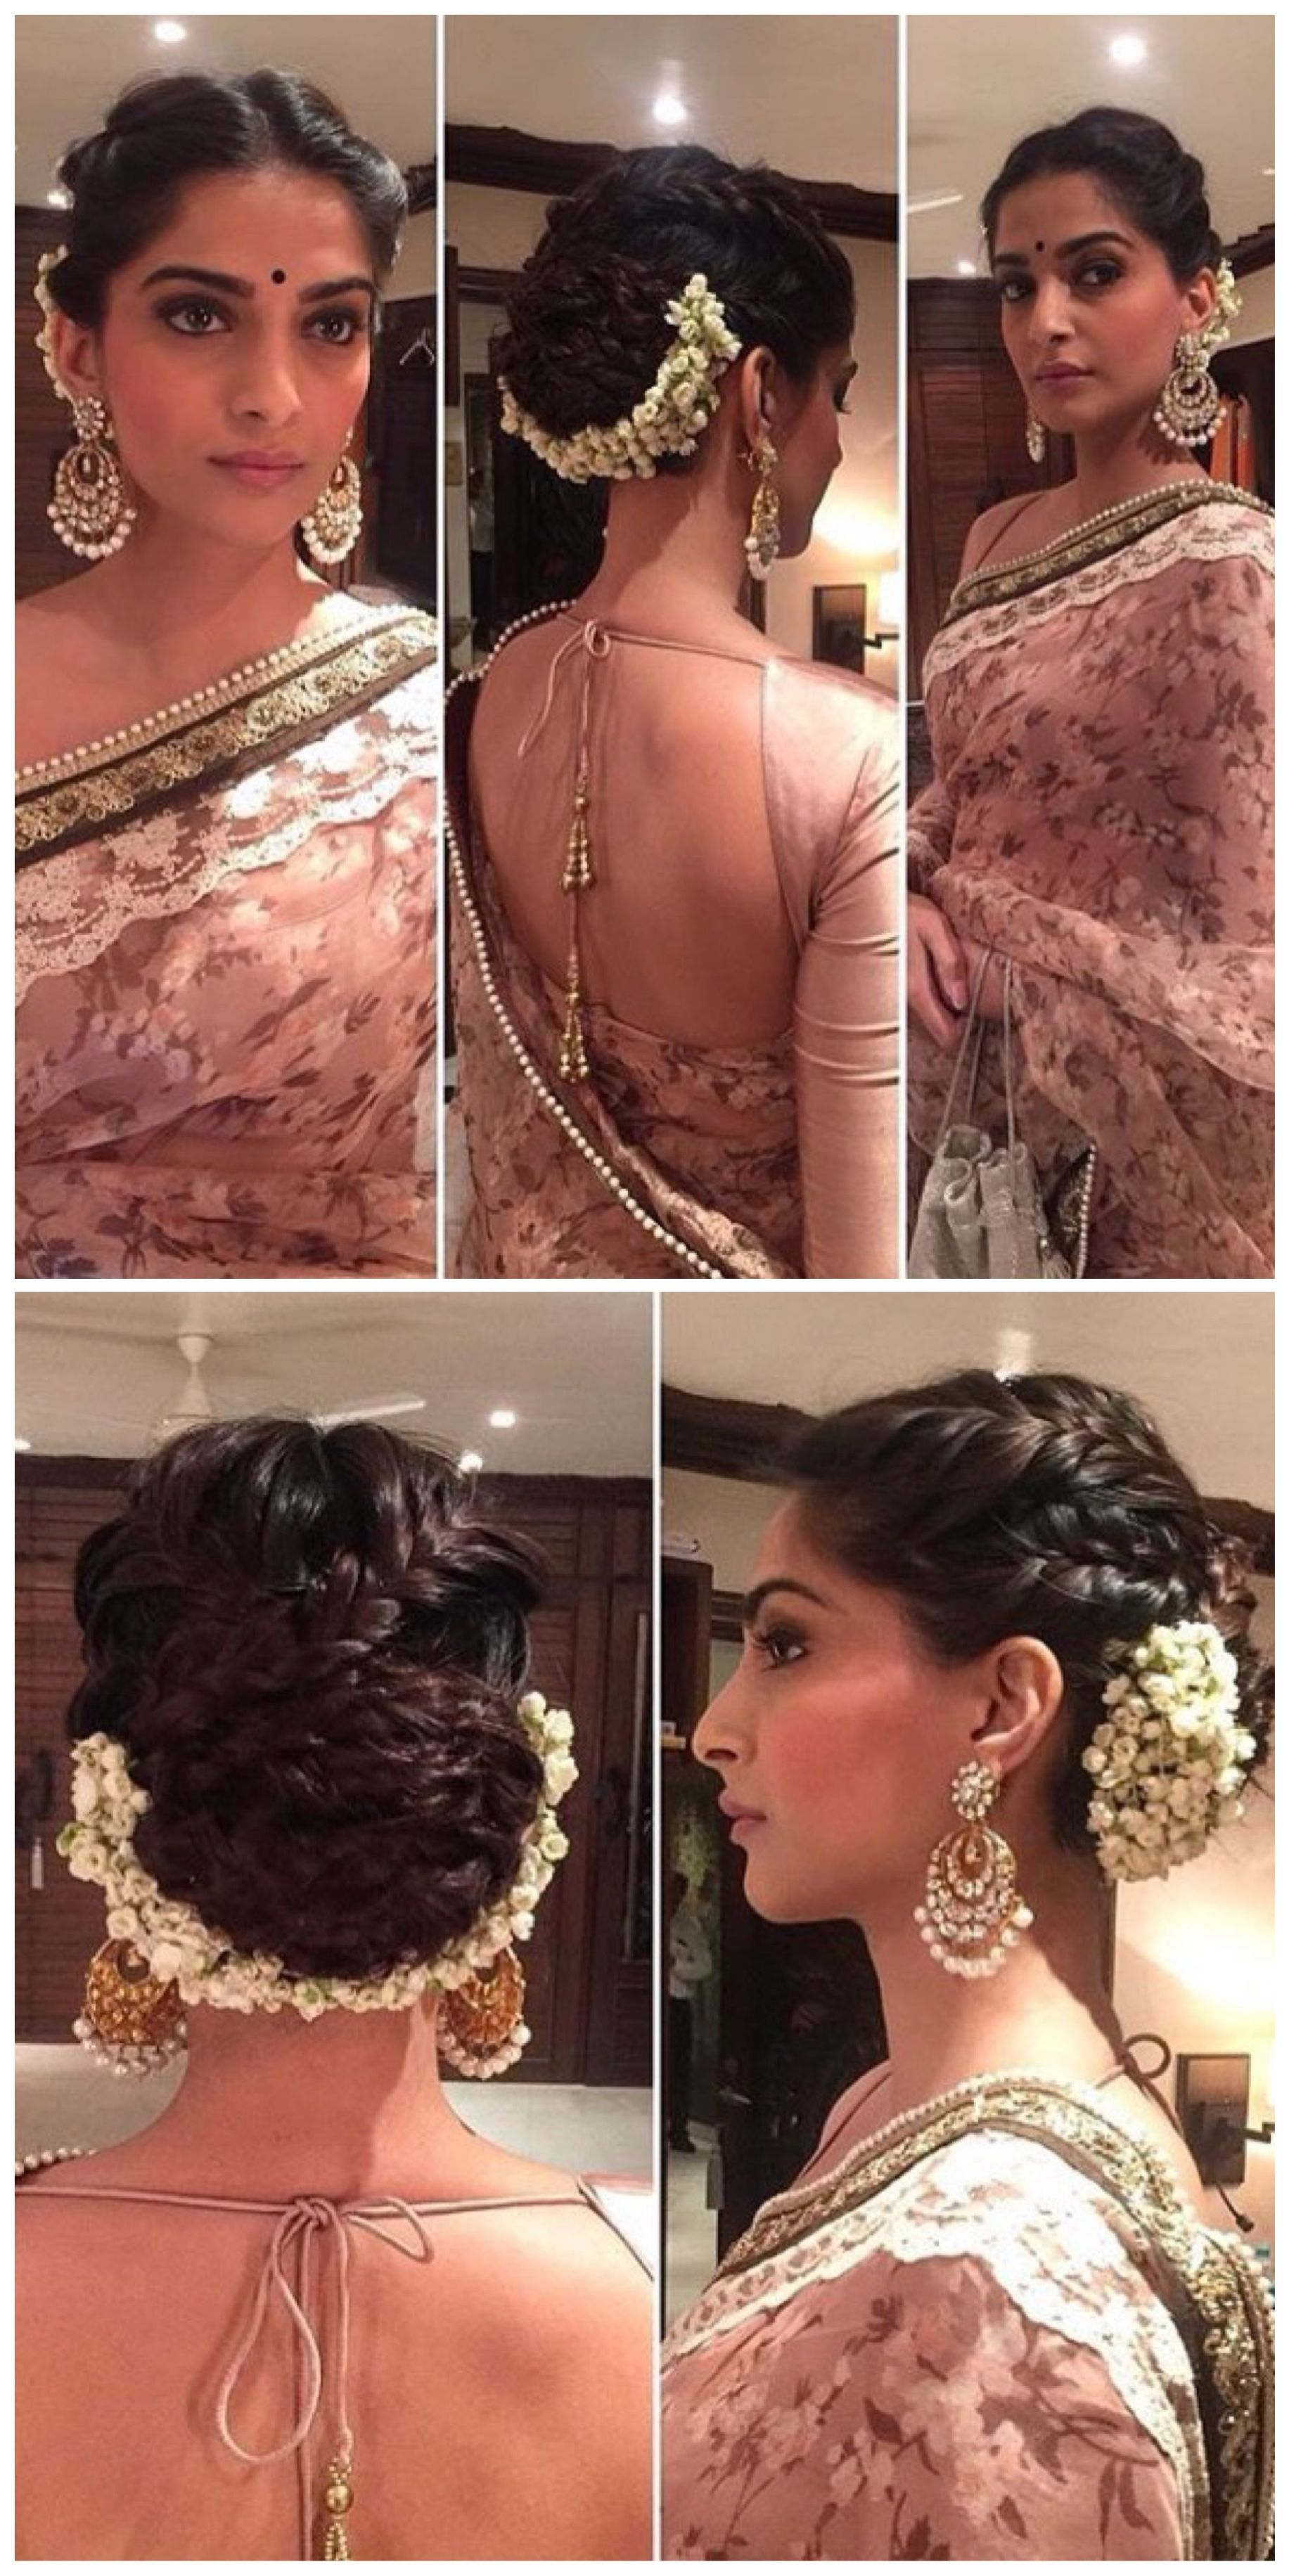 Sonam Kapoor s hairstyle is on fleek for a wedding Love the braided